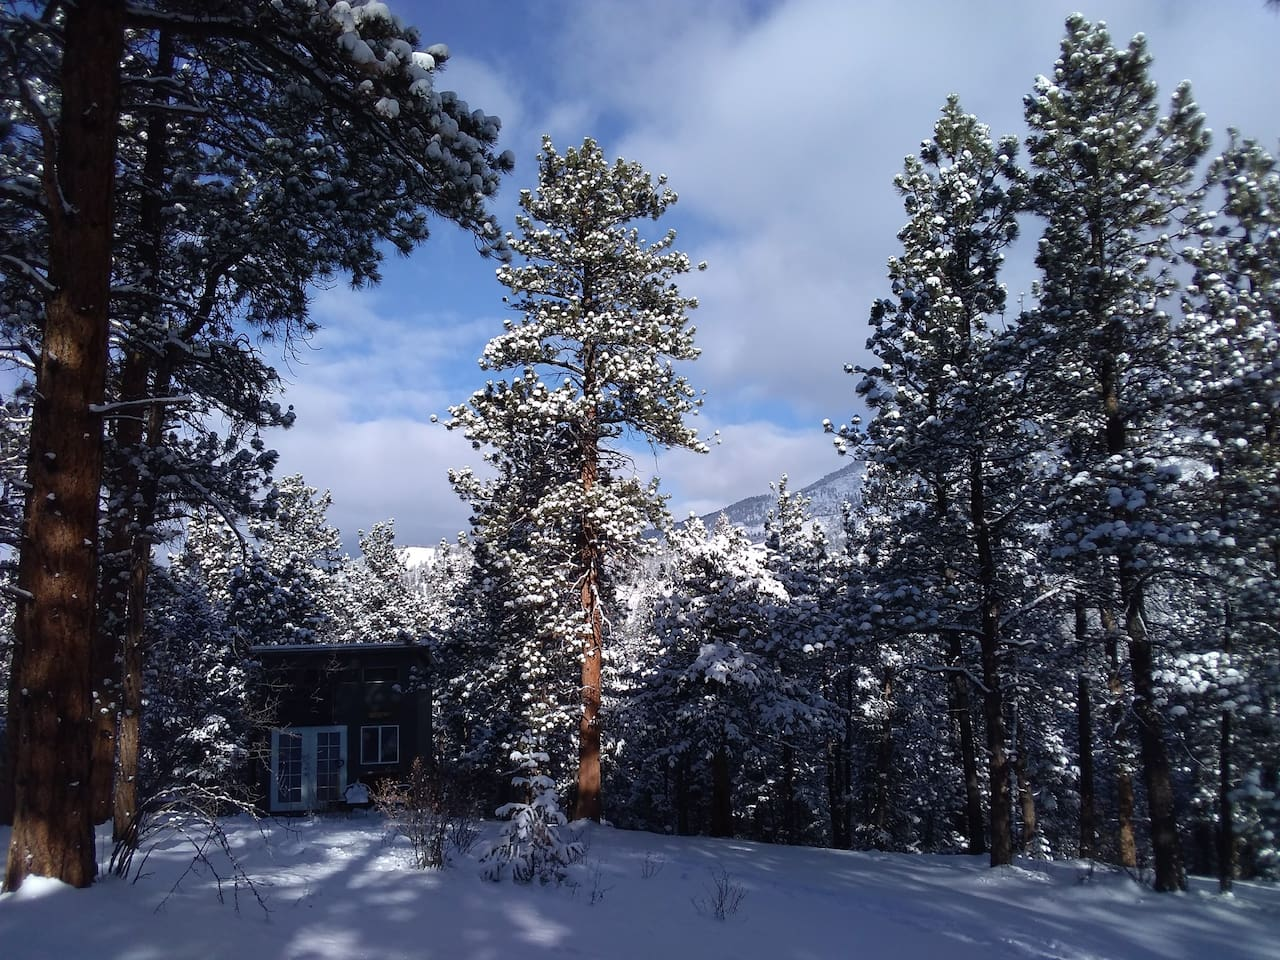 Relax and rejuvenate in your private mountain winter wonder land.